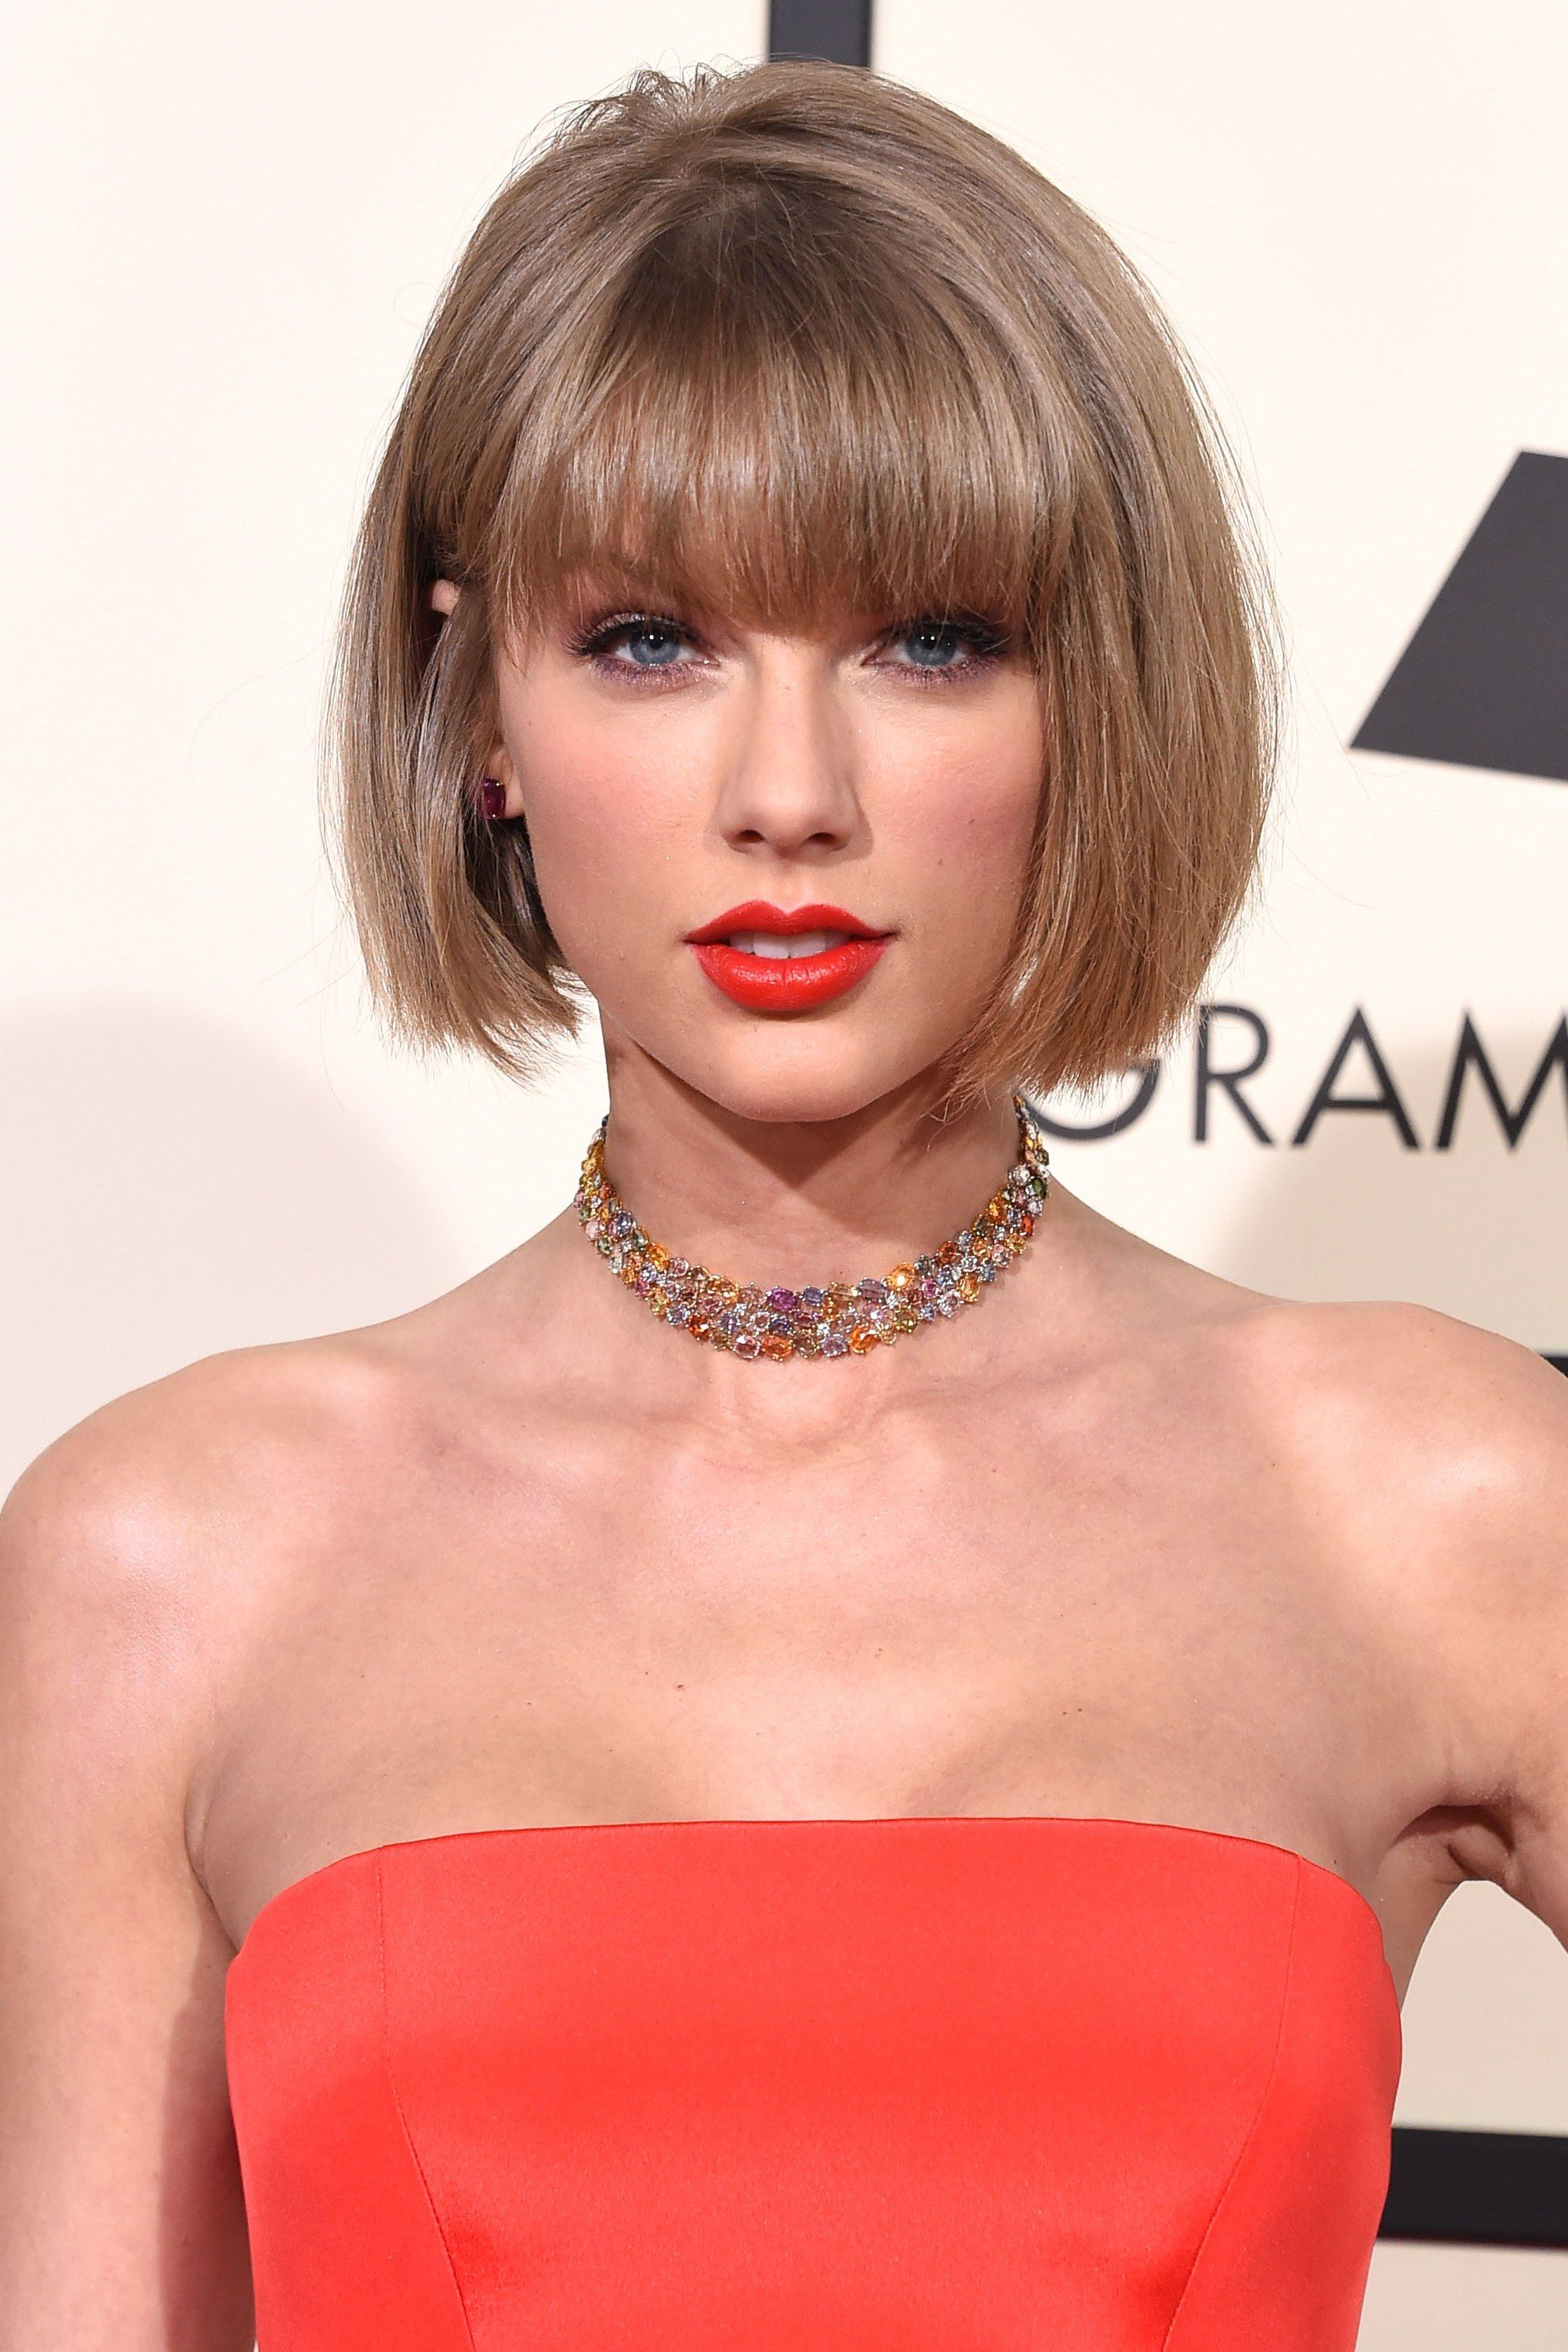 17 Pretty Prom Makeup Ideas Straight from Your Fave Celebs | Teen Vogue